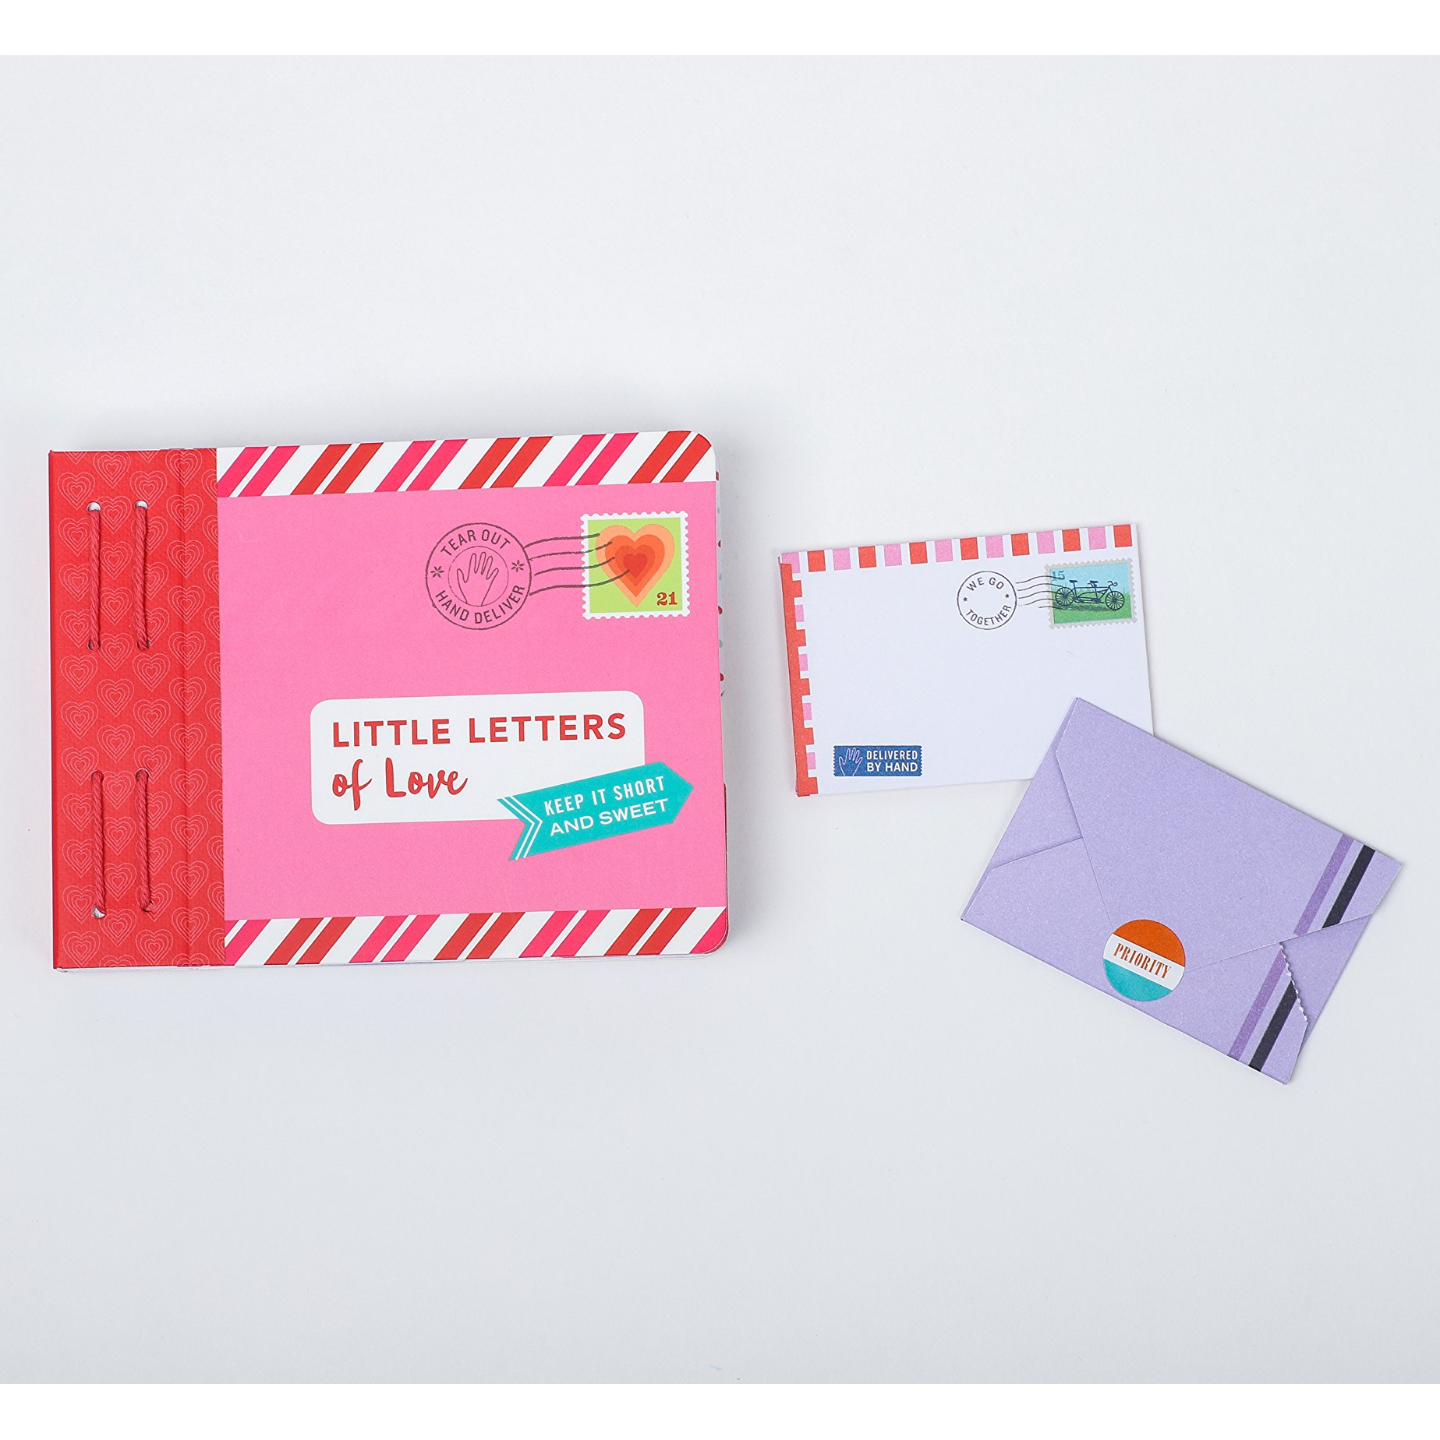 LITTLE LETTERS OF LOVE Chronicle